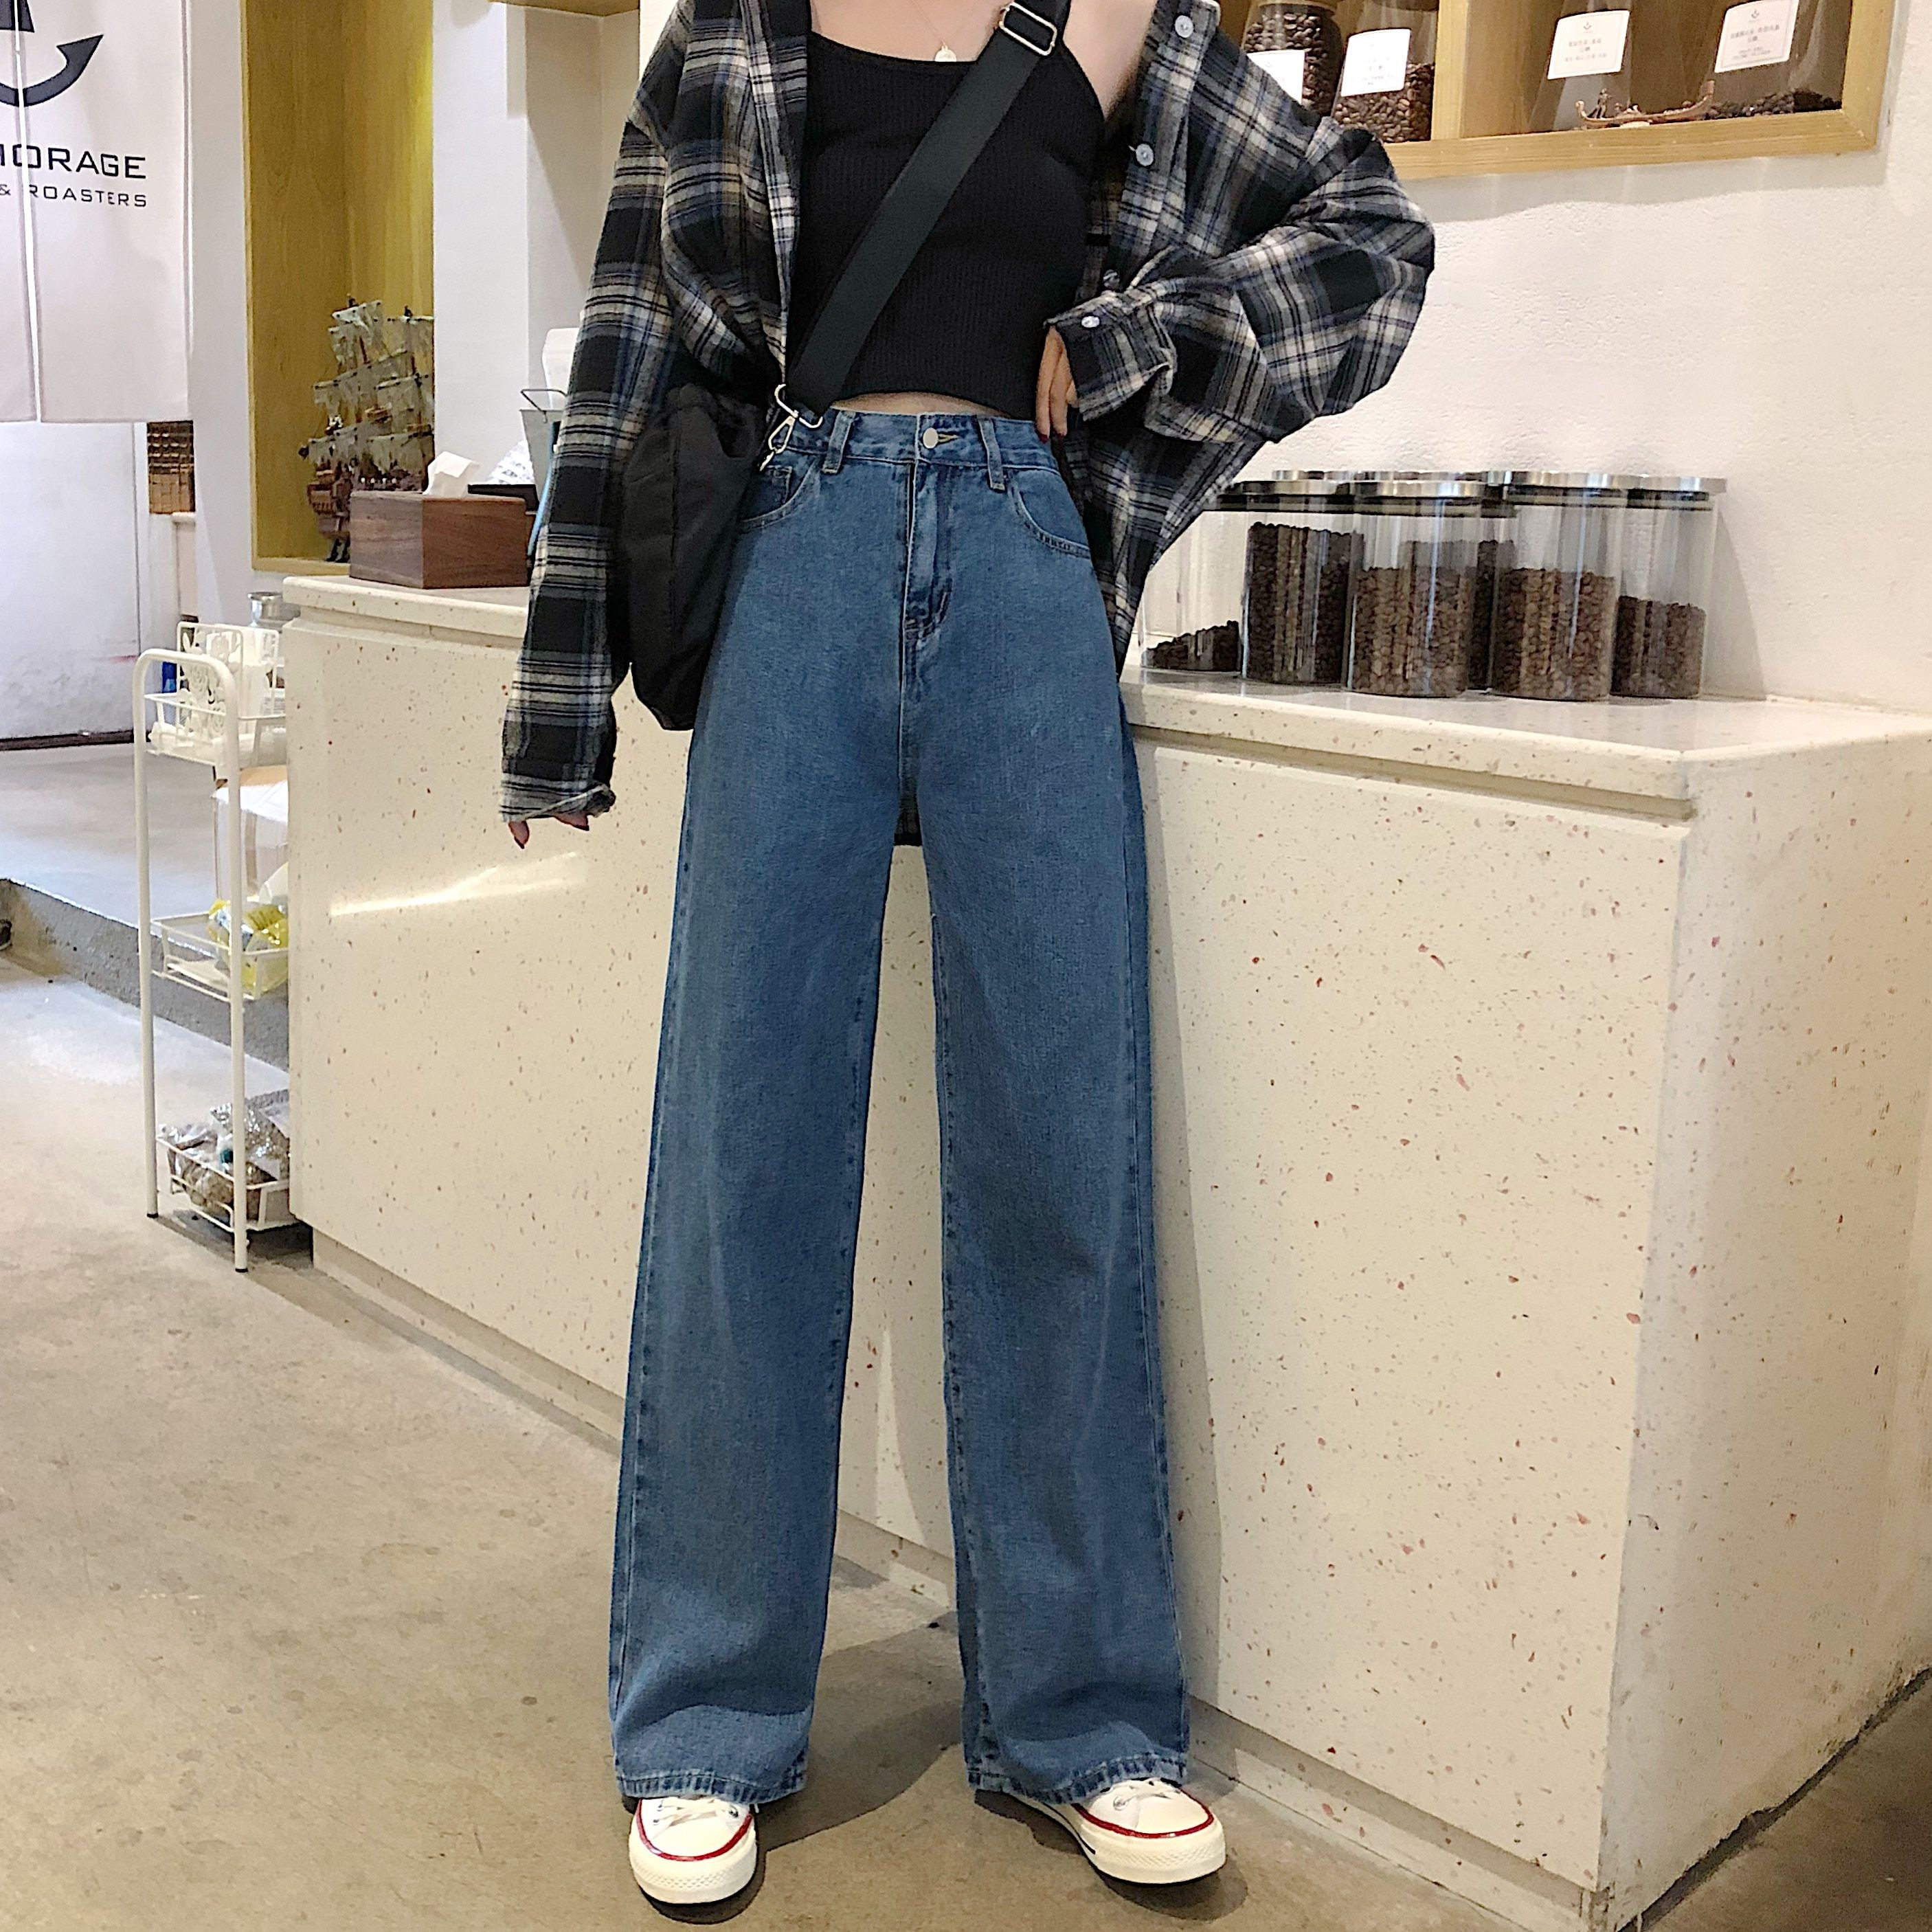 Photo of High Waist Jeans For Women Vintage Long Denim Pants Female Vintage Casual Loose Full Length Wide Leg